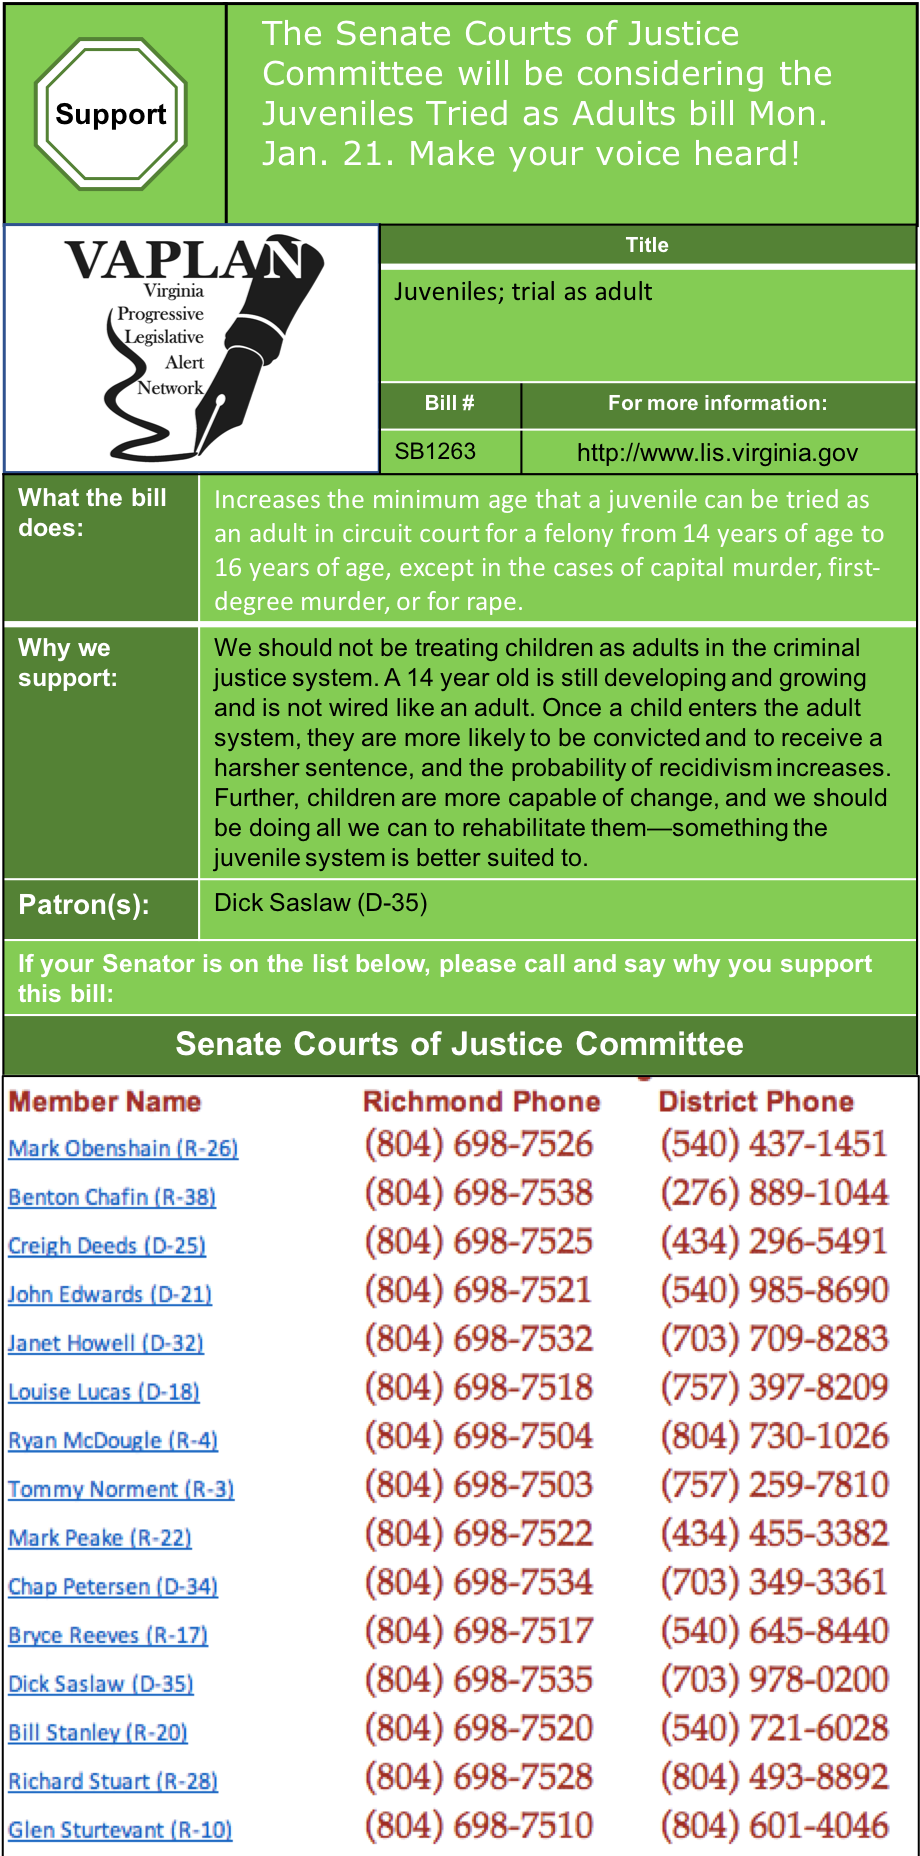 UPDATE: Raise Age at Which Children Tried as Adults to 16 in Senate Courts of Justice Mon. Jan. 28!